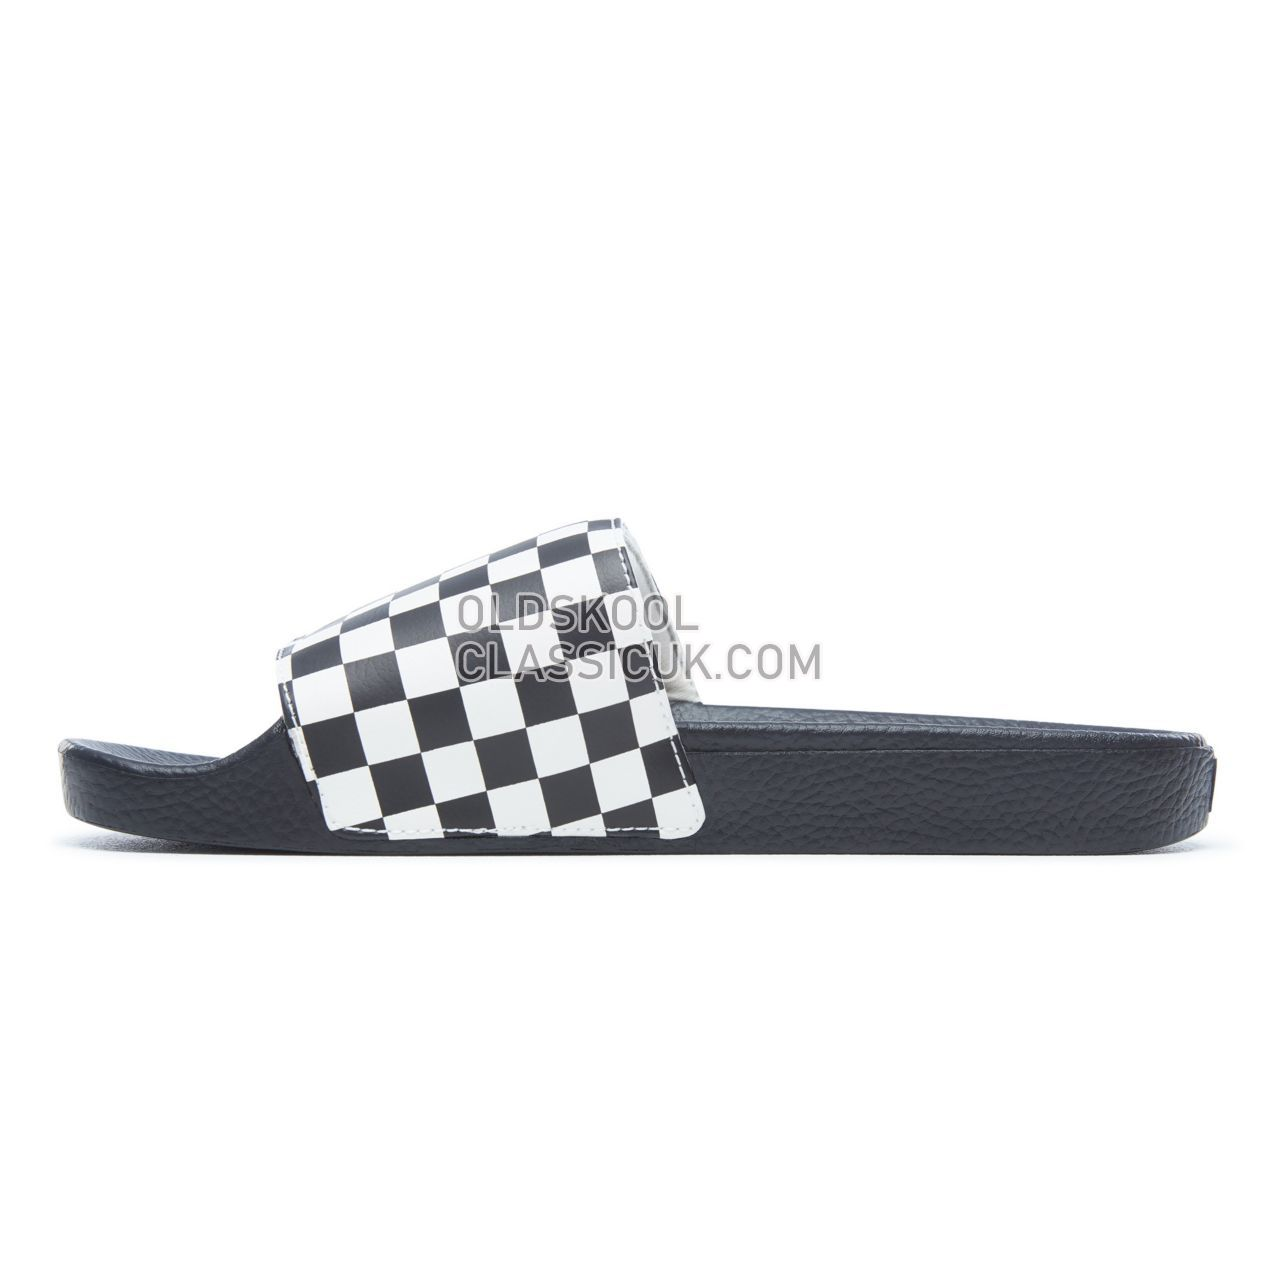 a9c67c044a03 ... Vans Checkerboard Slide-On Sandals Mens White V4KIIP9 Shoes ...